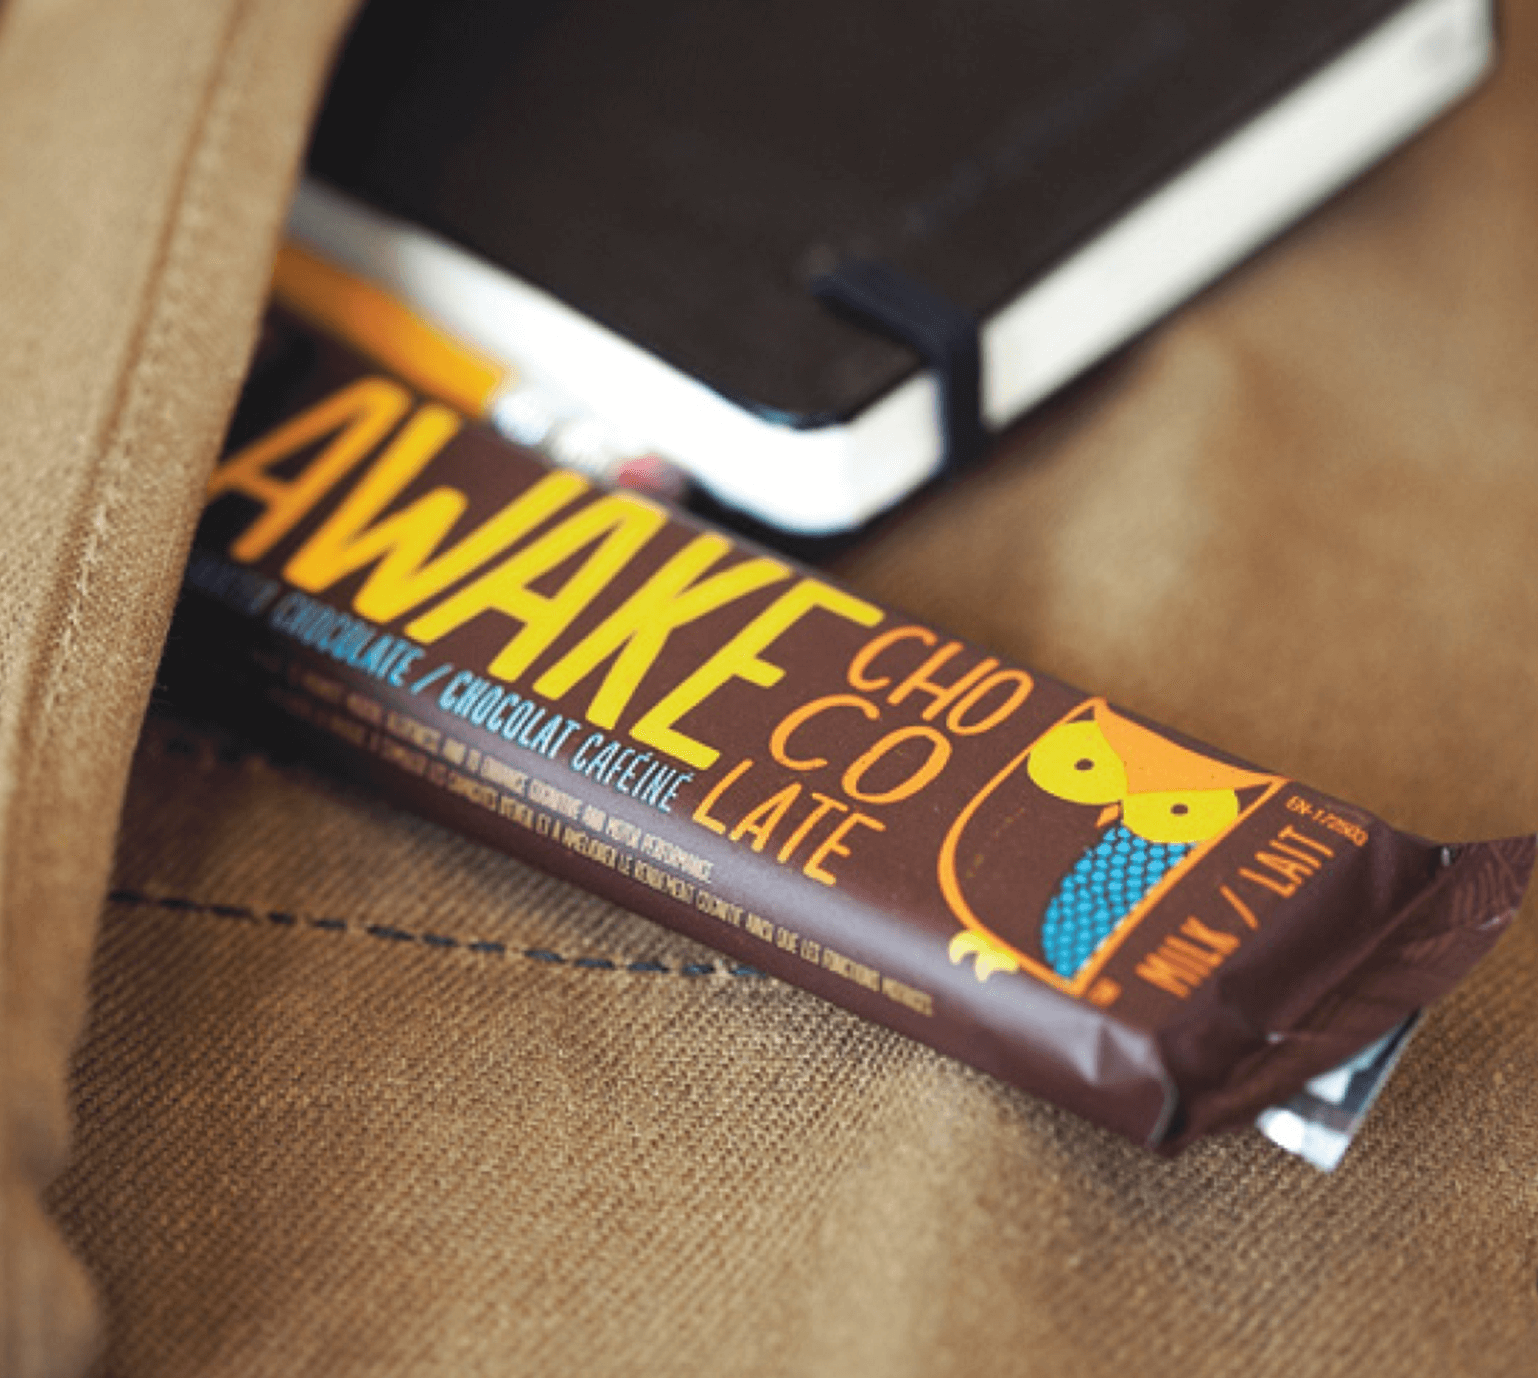 Lifestyle image of Awake bars in a pocket